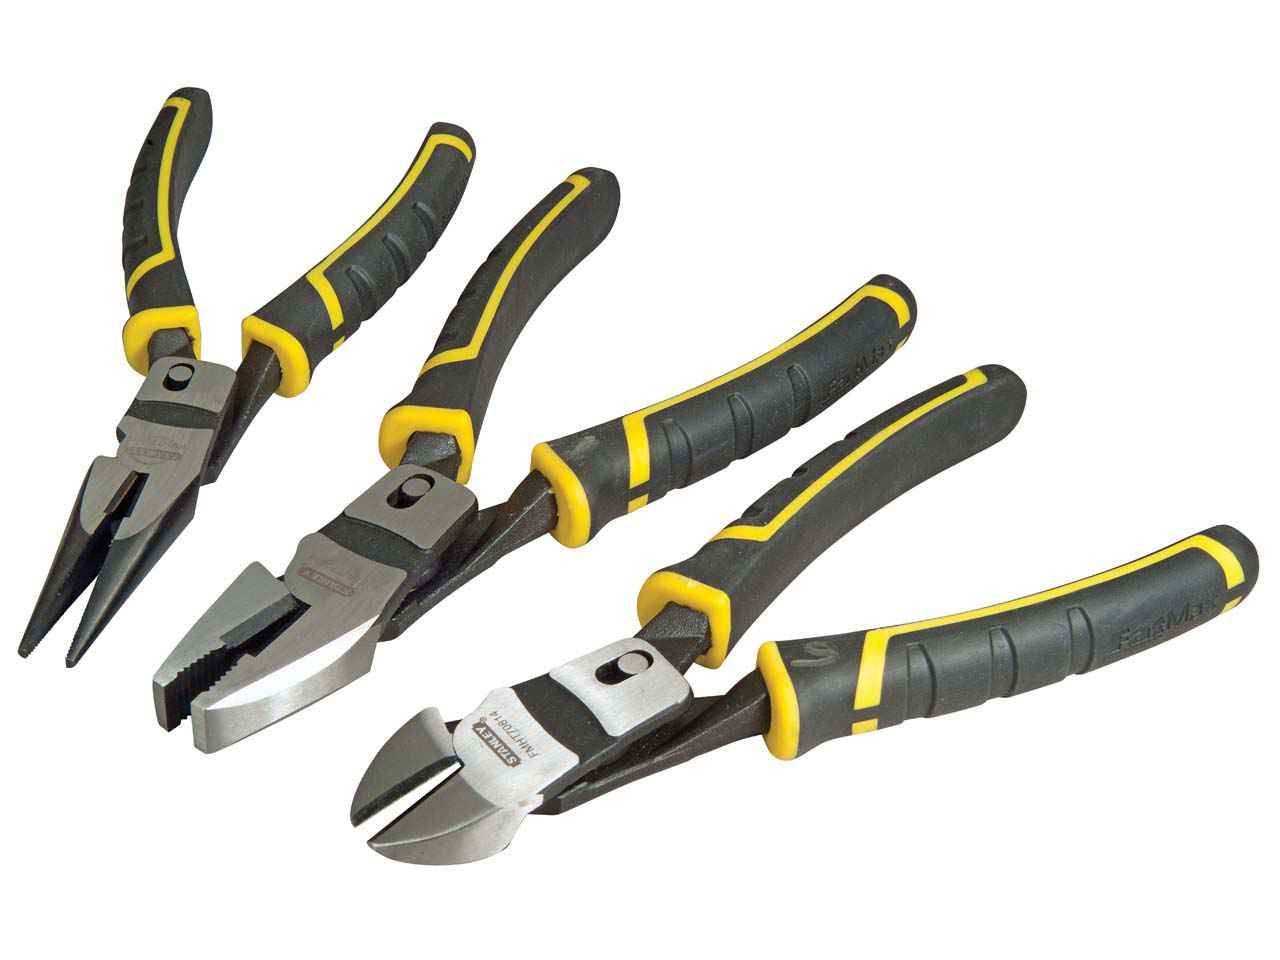 Stanley Fmht0 72415 Fatmax Compound Action Pliers Set Of 3